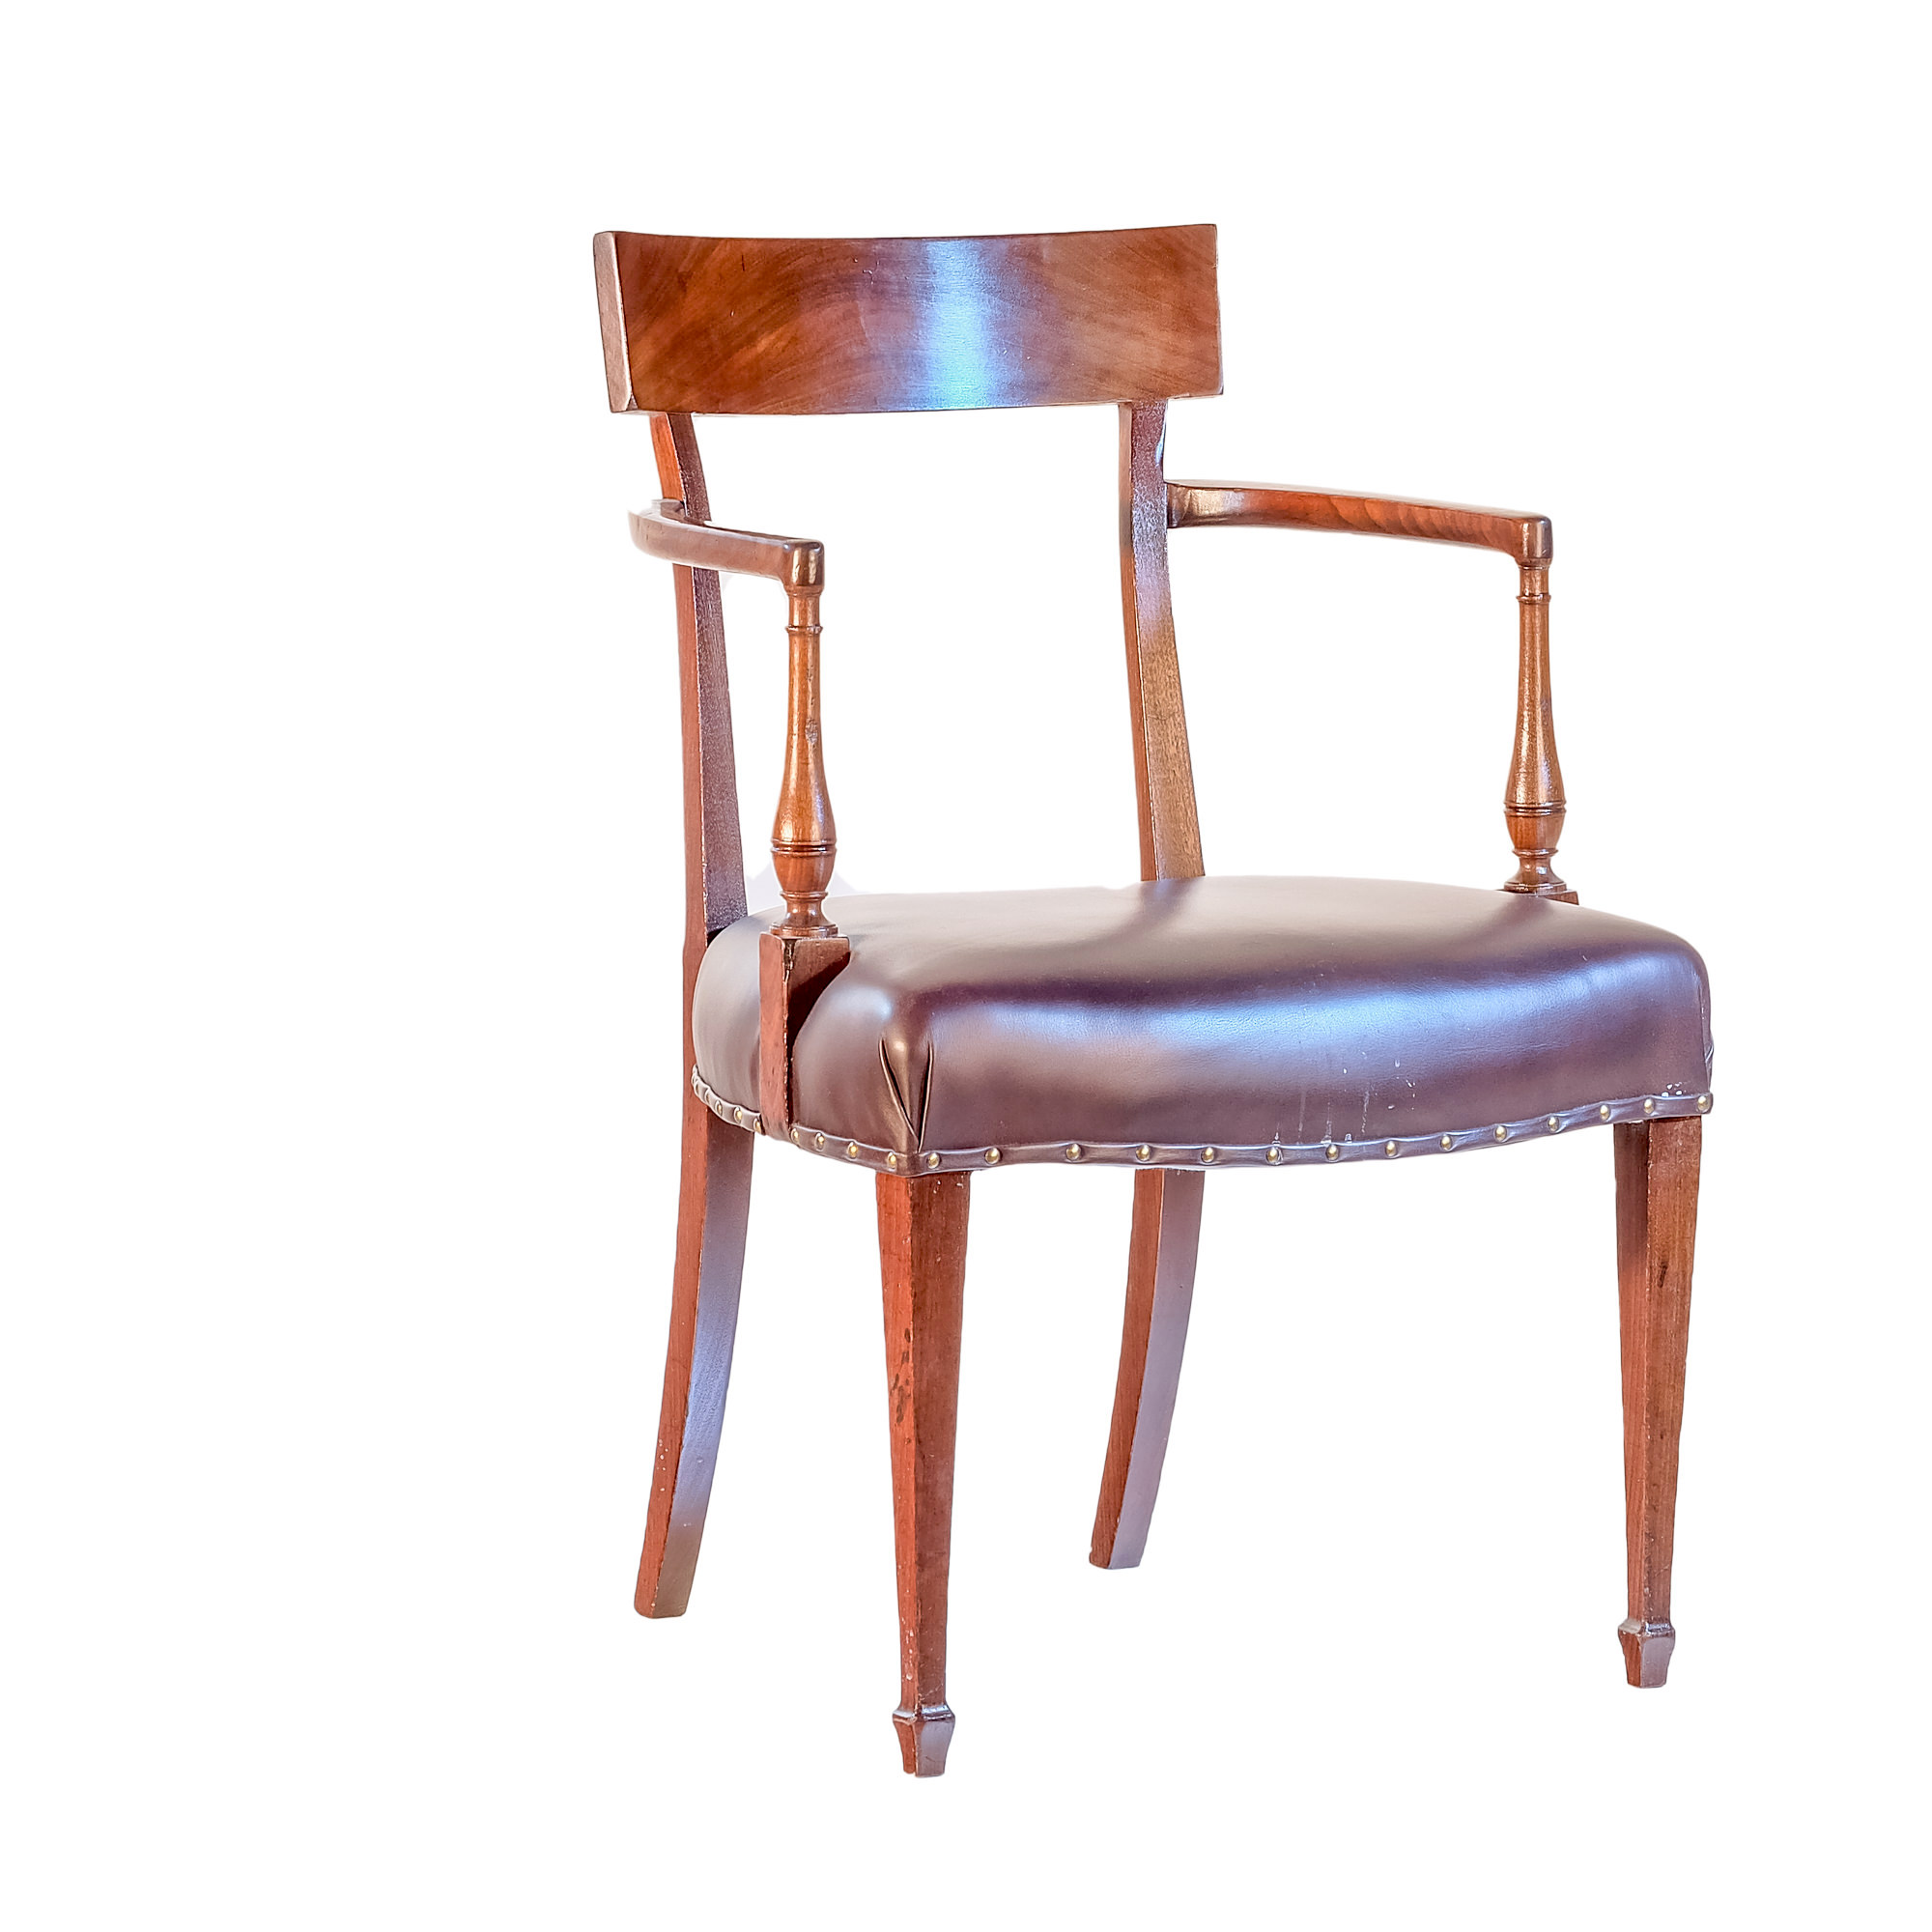 'George III Sheraton Mahogany Open Armchair with Dark Brown Leather Upholstery Circa 1800'